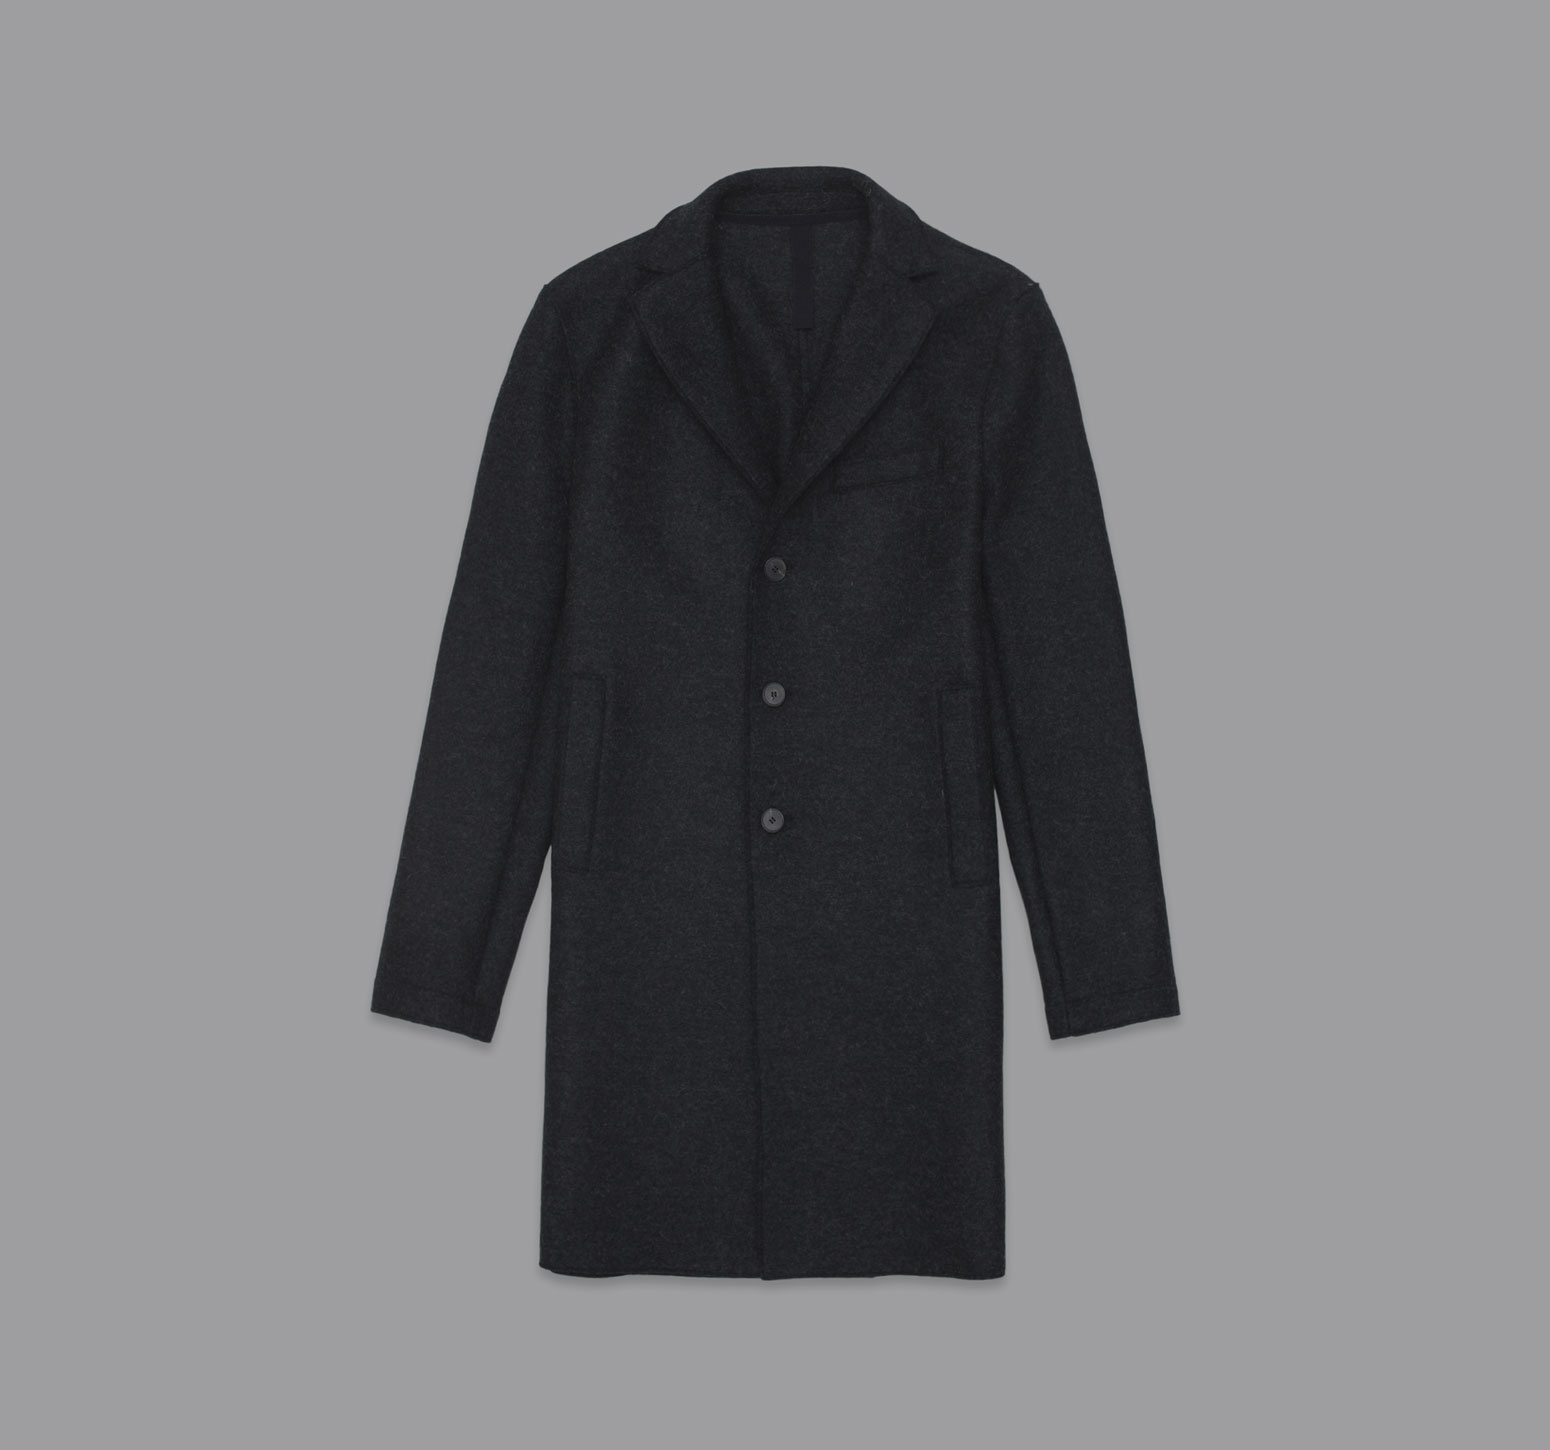 atelier_image_banner-outerwear-40